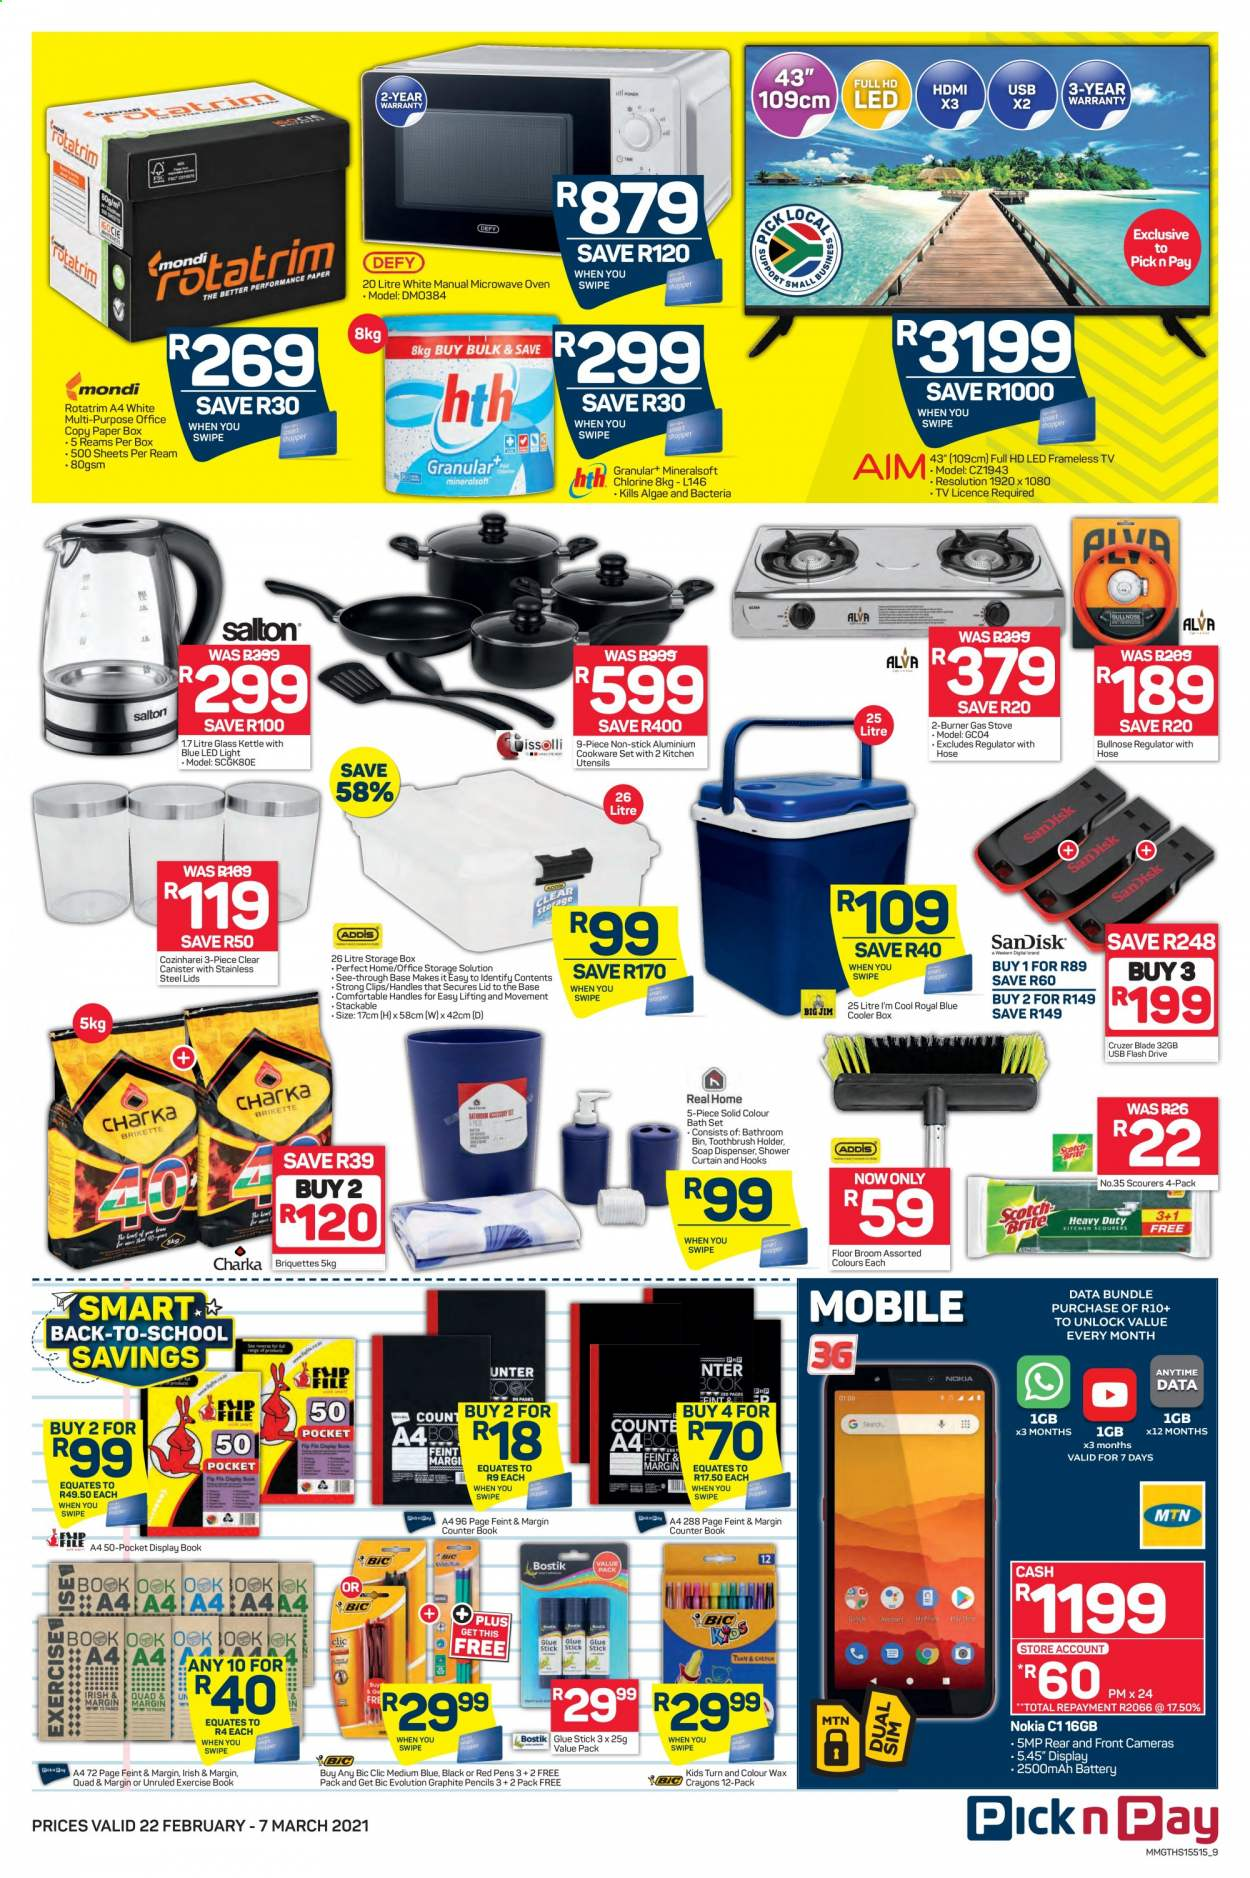 Pick n Pay catalogue  - 02.22.2021 - 02.28.2021. Page 9.